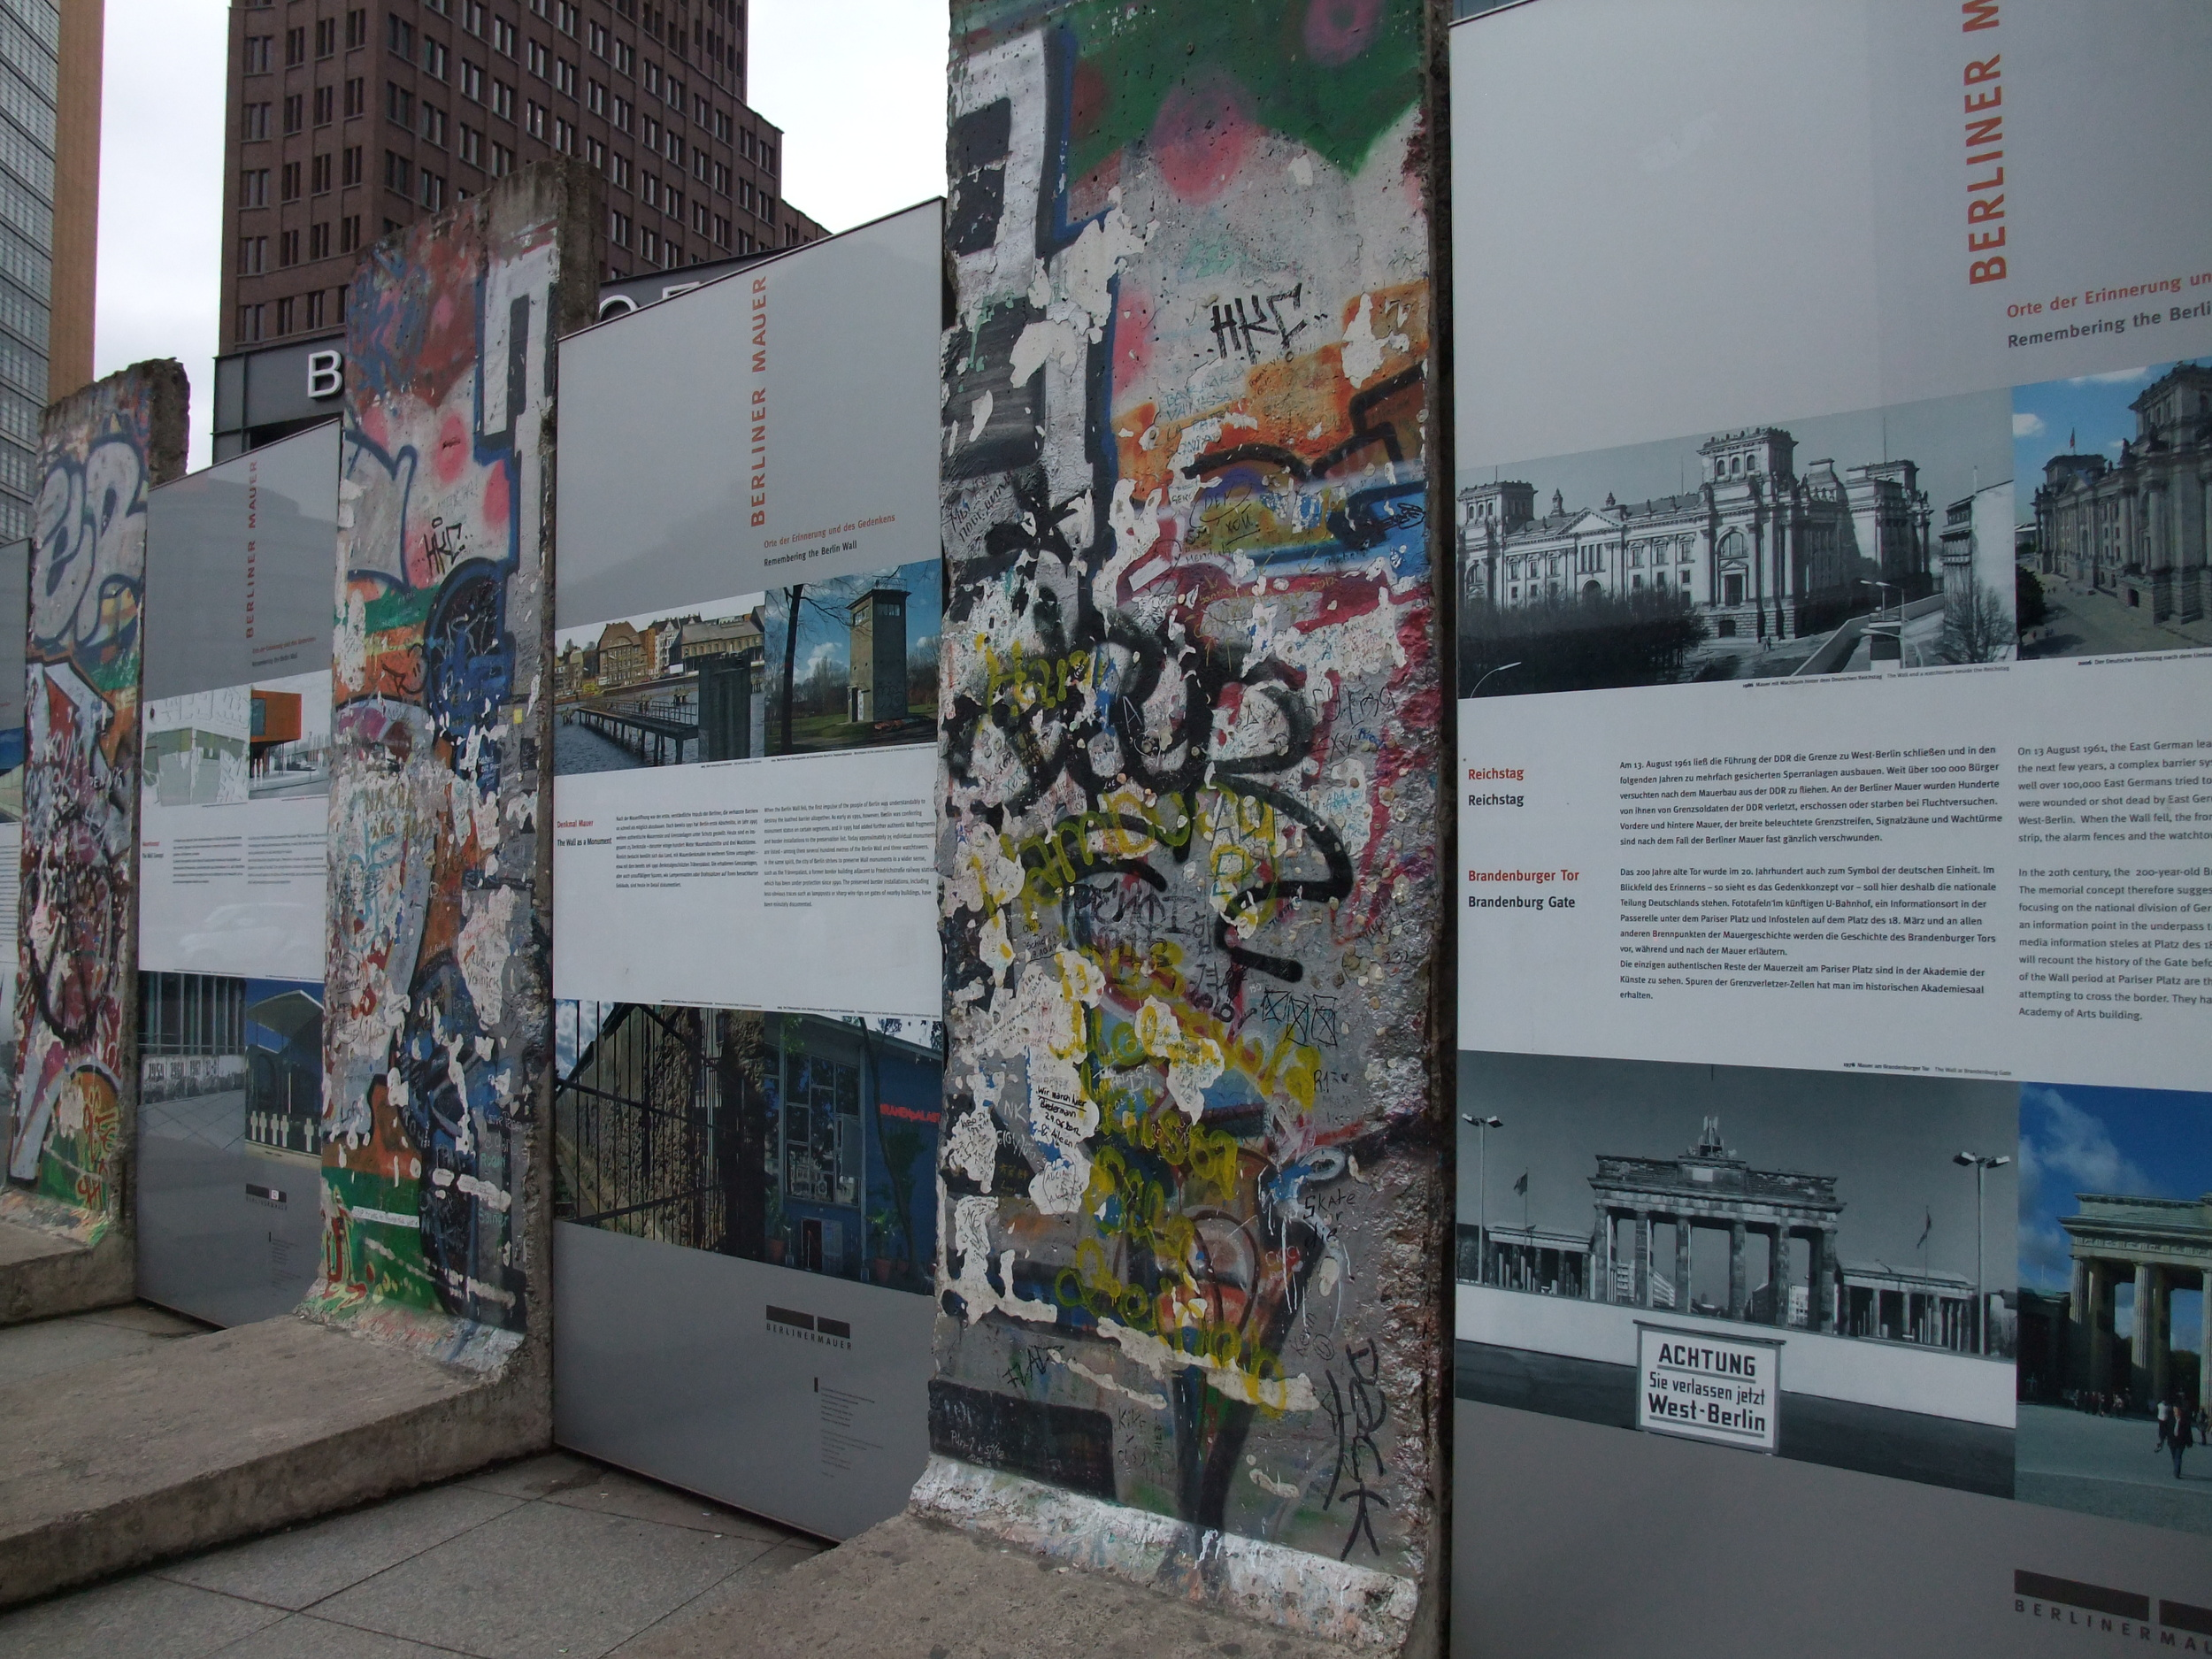 A section of the Berlin Wall at Potsdamer Platz